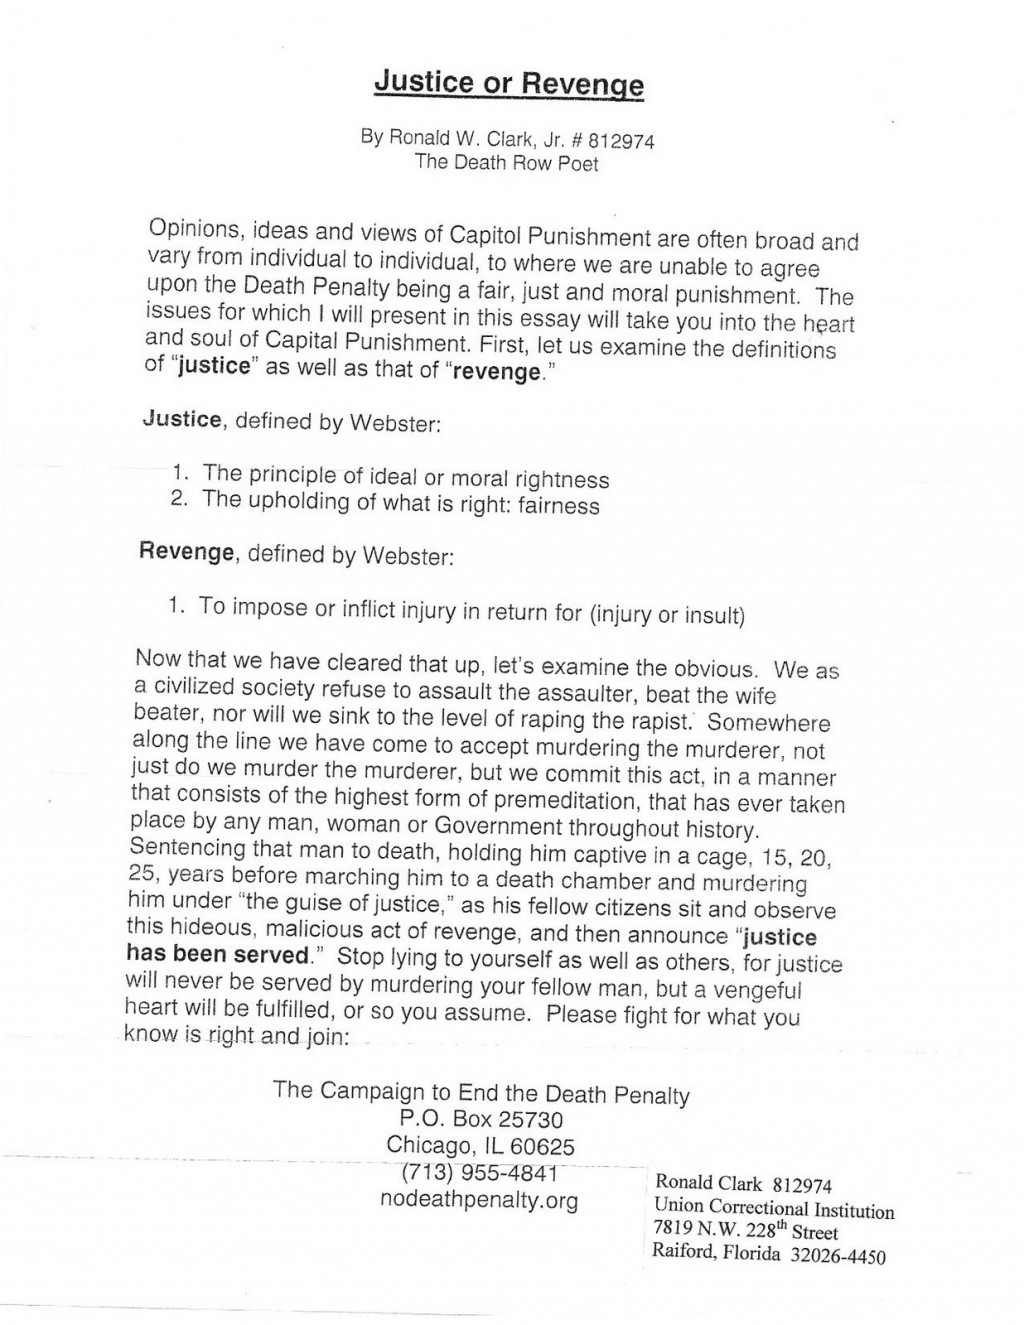 010 Death Penalty Essays Essay Example Scn 0008 Sensational Pro Titles Outline Topics Large